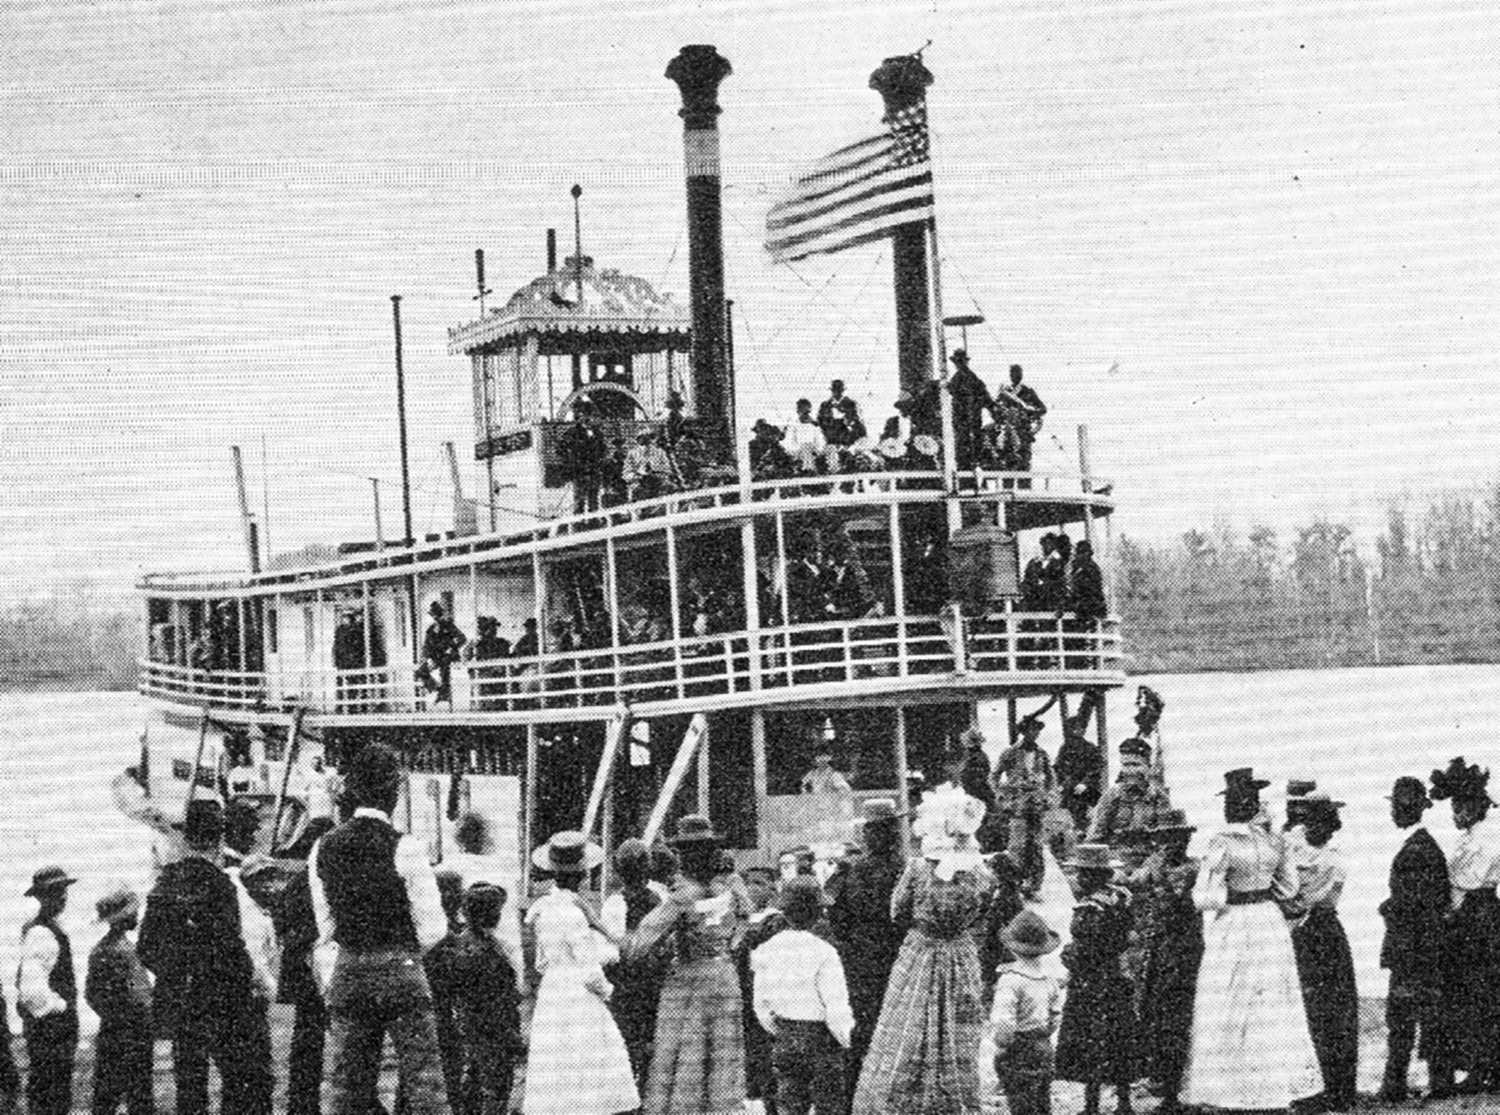 The Gracie Kent at an Atchafalaya River landing in 1898.